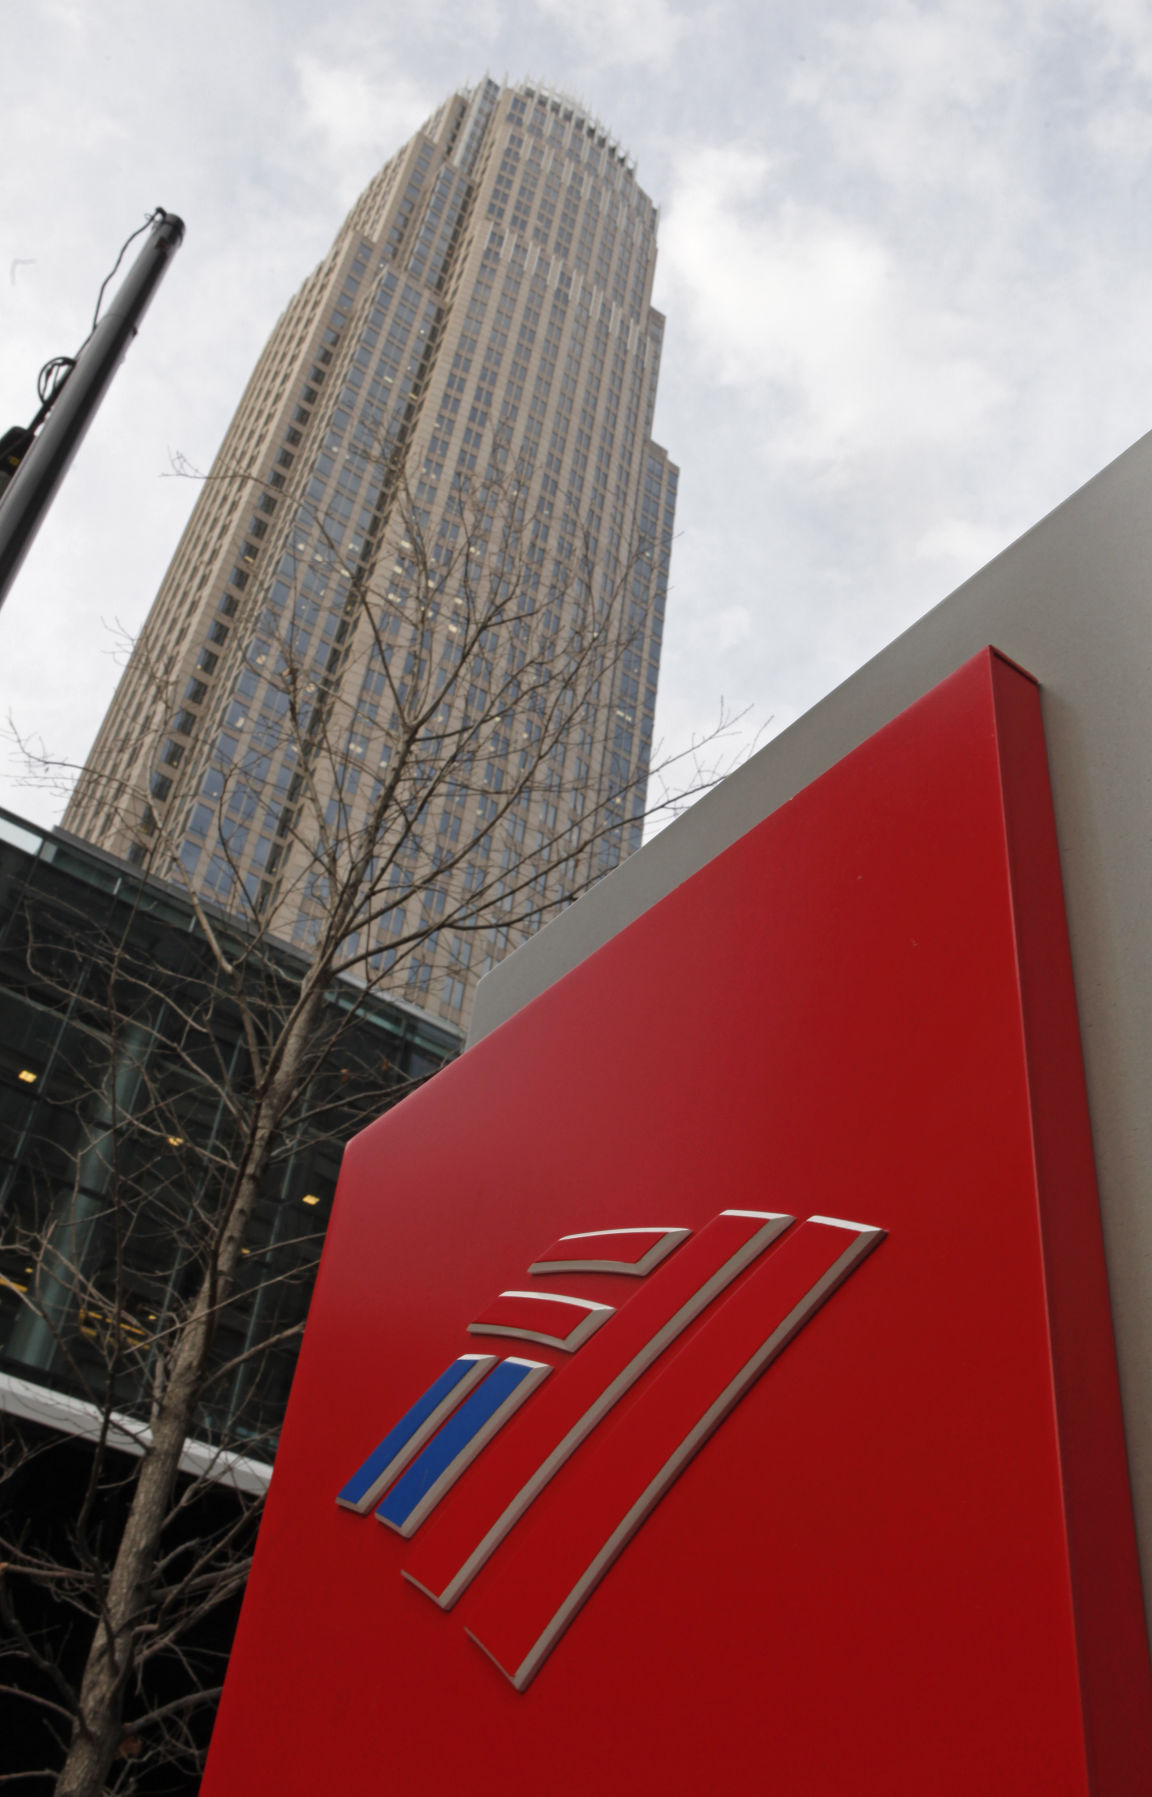 Bank of America agrees to pay MBIA $1.7 billion